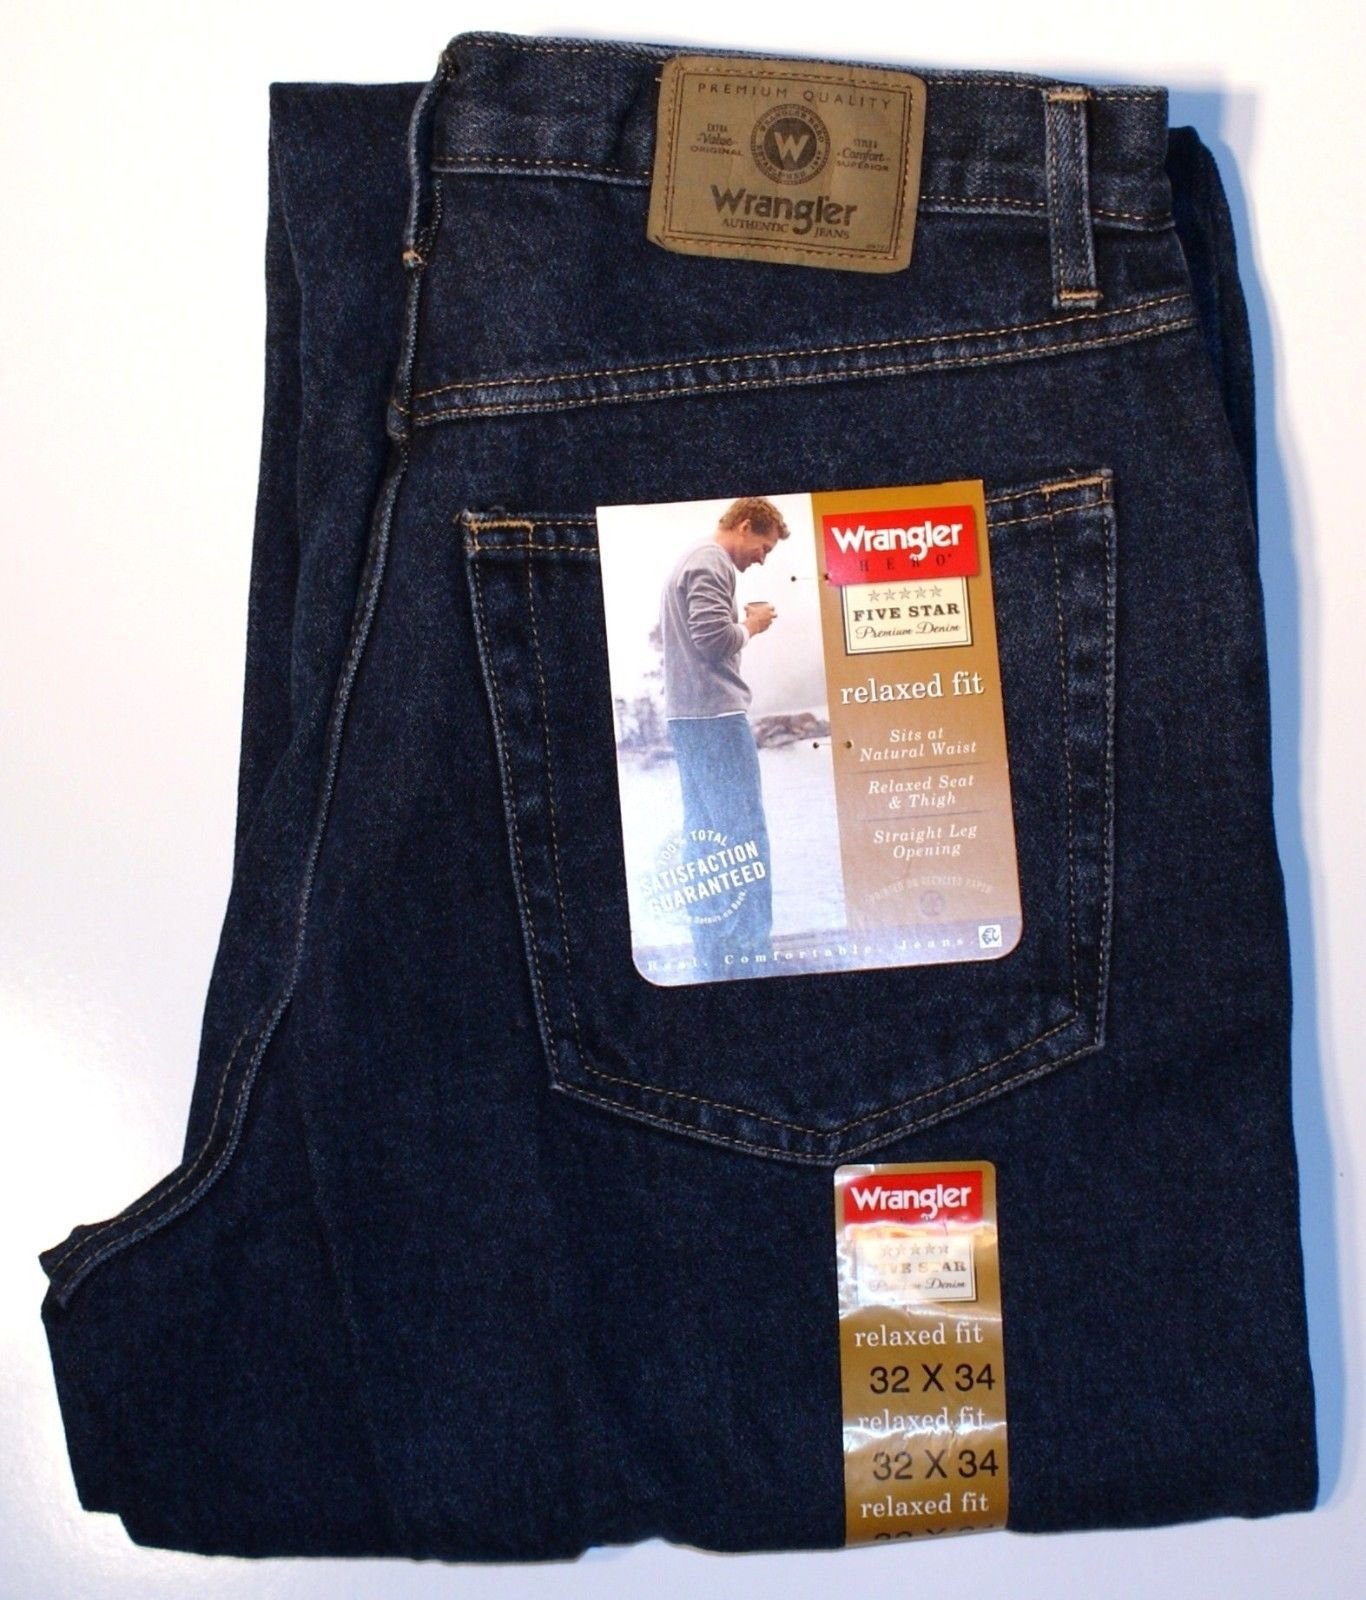 892c0a95 New Wrangler Five Star Mens Relaxed Fit Jeans Indigo Denim Color All Sizes